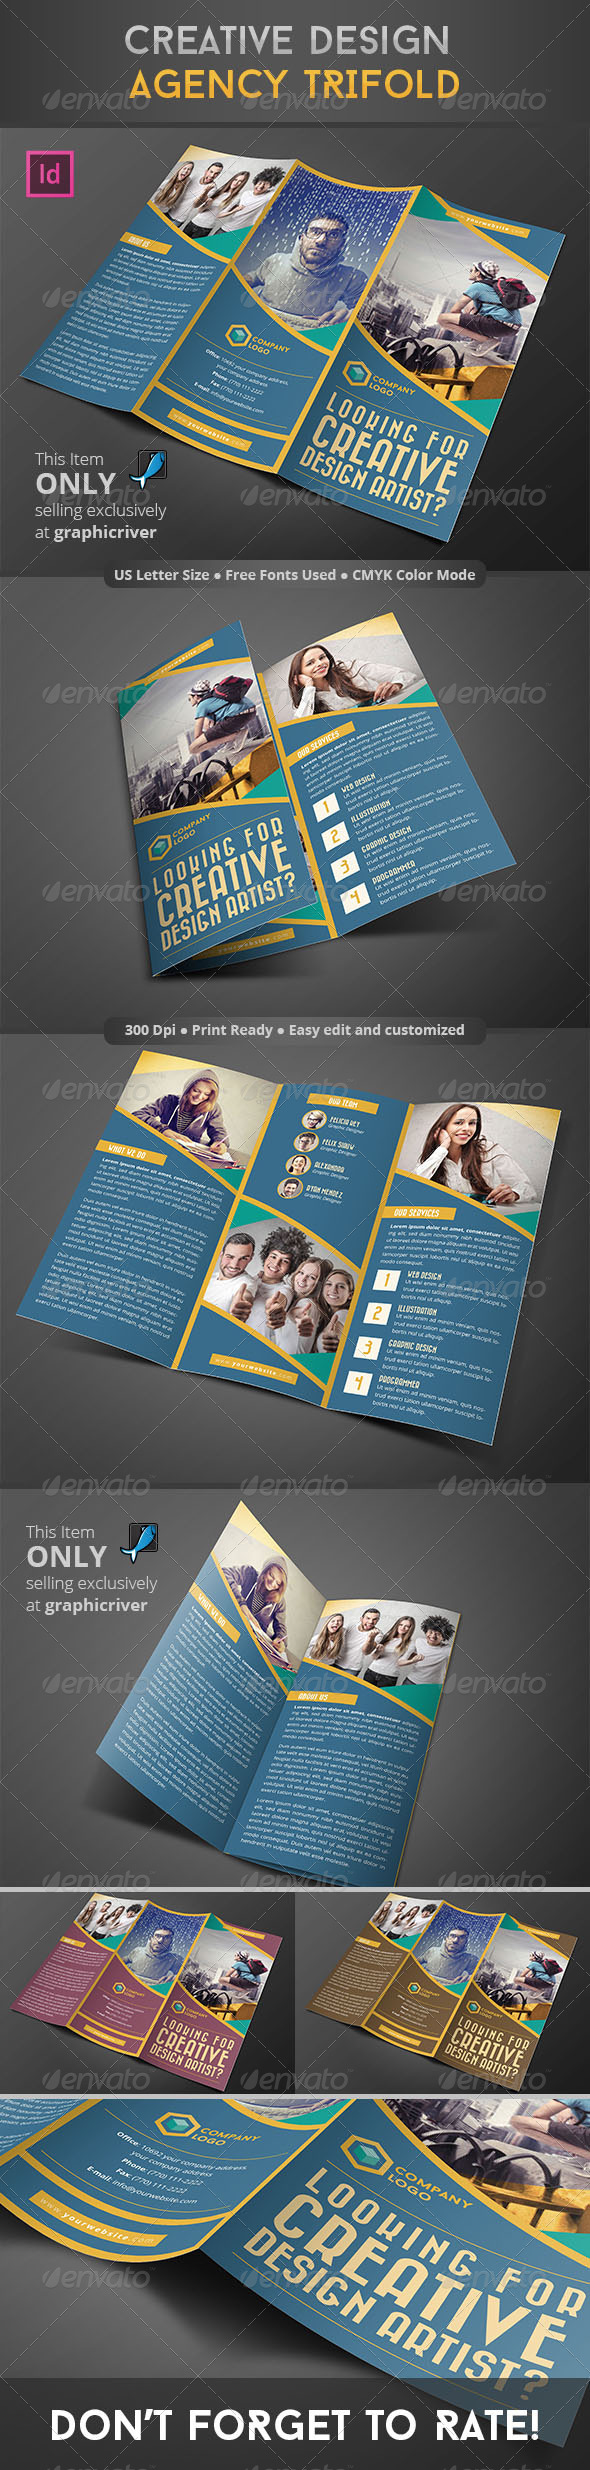 GraphicRiver Creative Design Agency Trifold 8756822